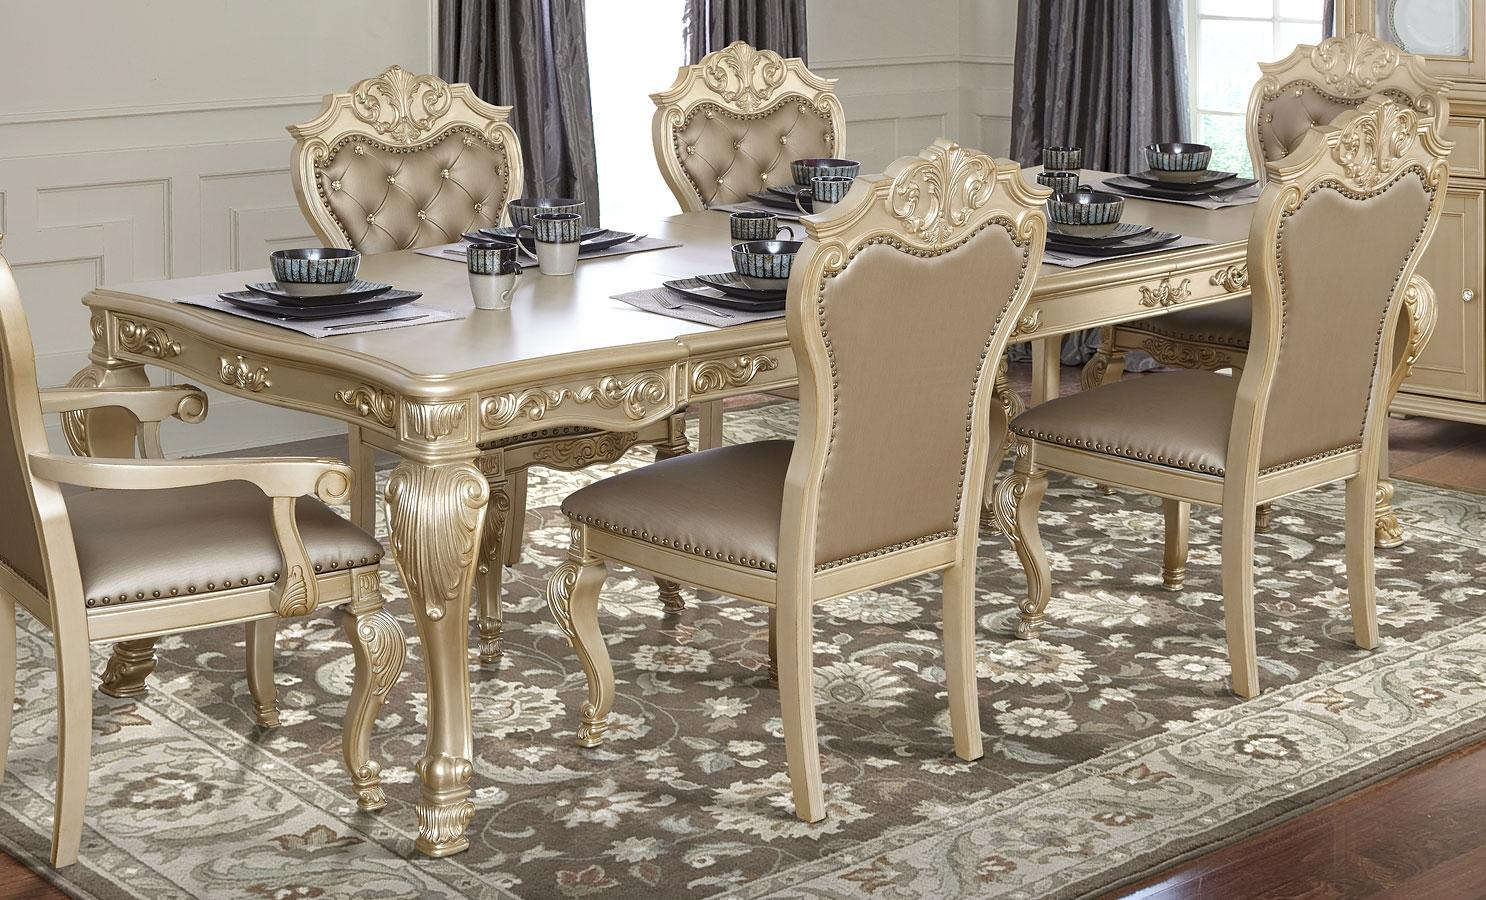 Transitional Gold  Dining Table 1 pcs Cosmos Furniture 2021GOMIR